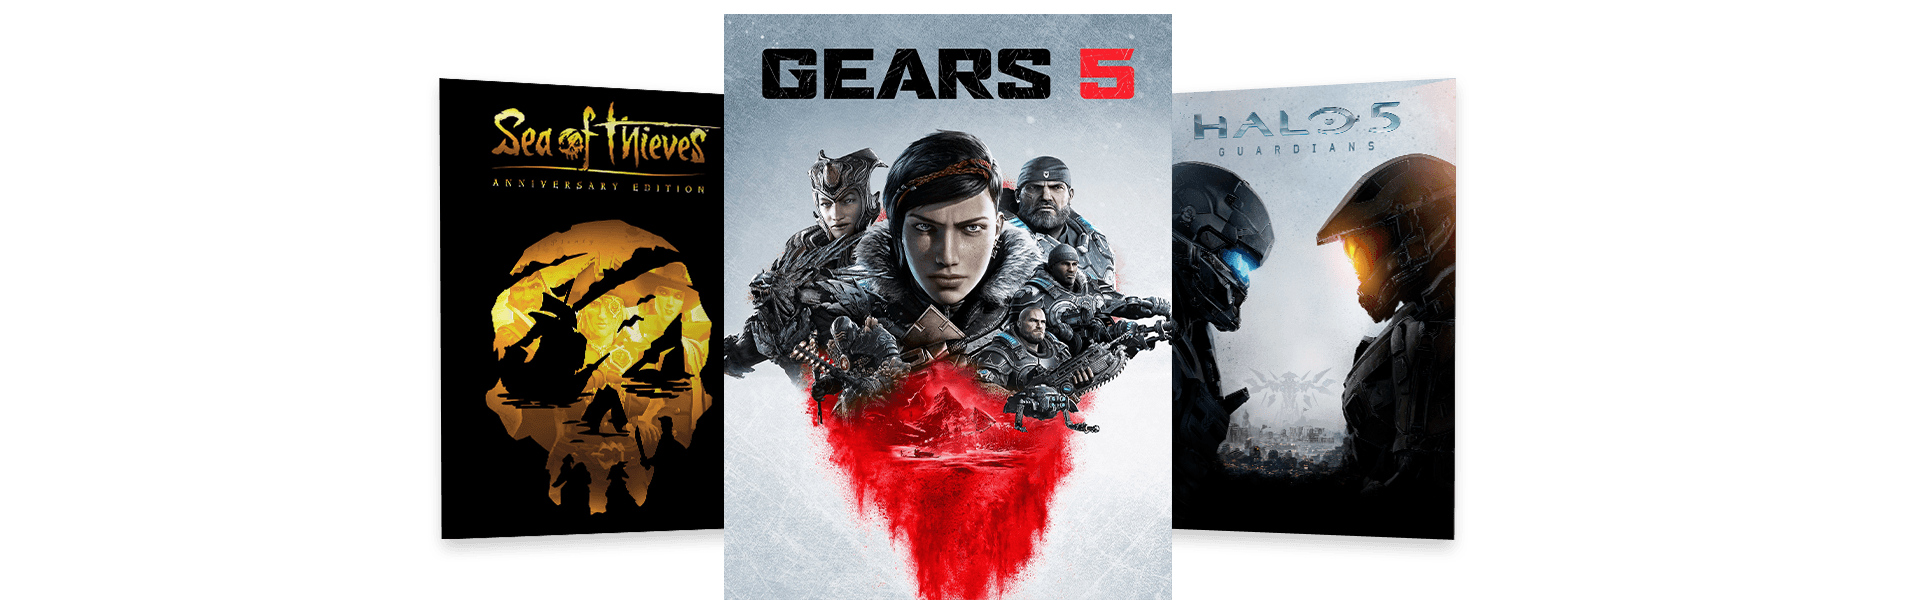 Gears 5, Sea of Thieves, and Halo 5 Guardians box art arranged in a fan pattern